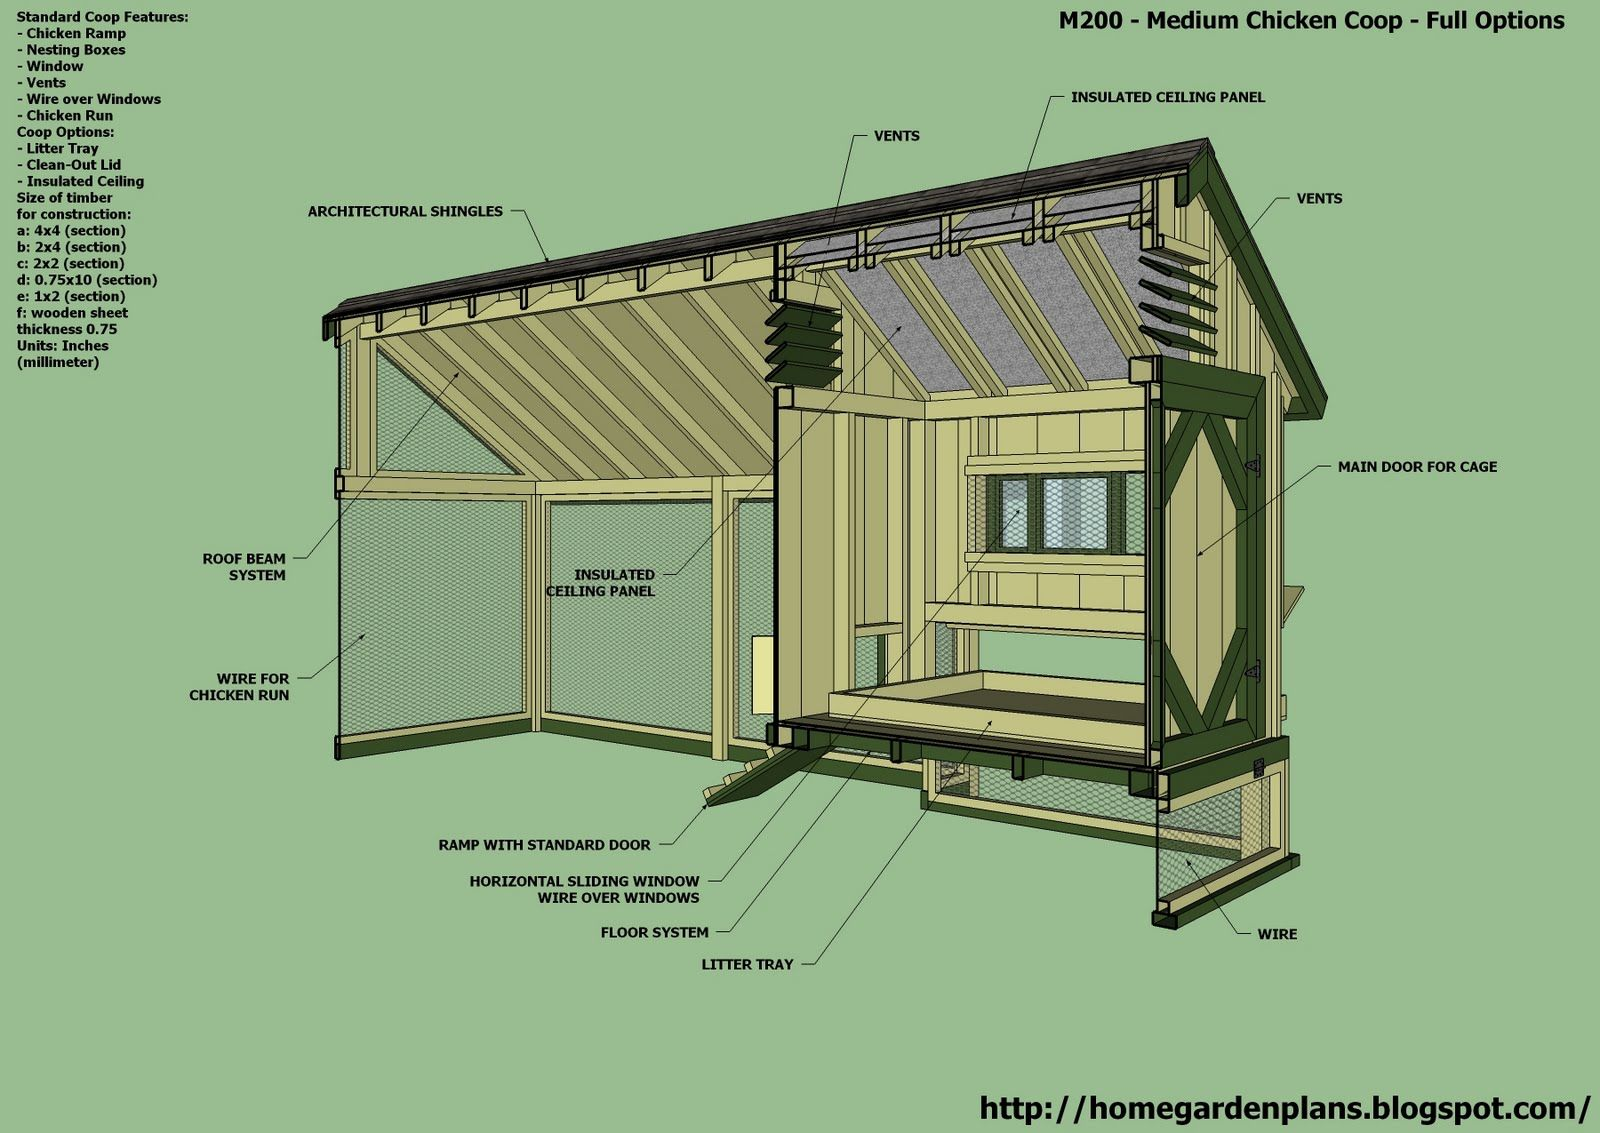 Home garden plans m200 perfect options backyard for Build a home online free